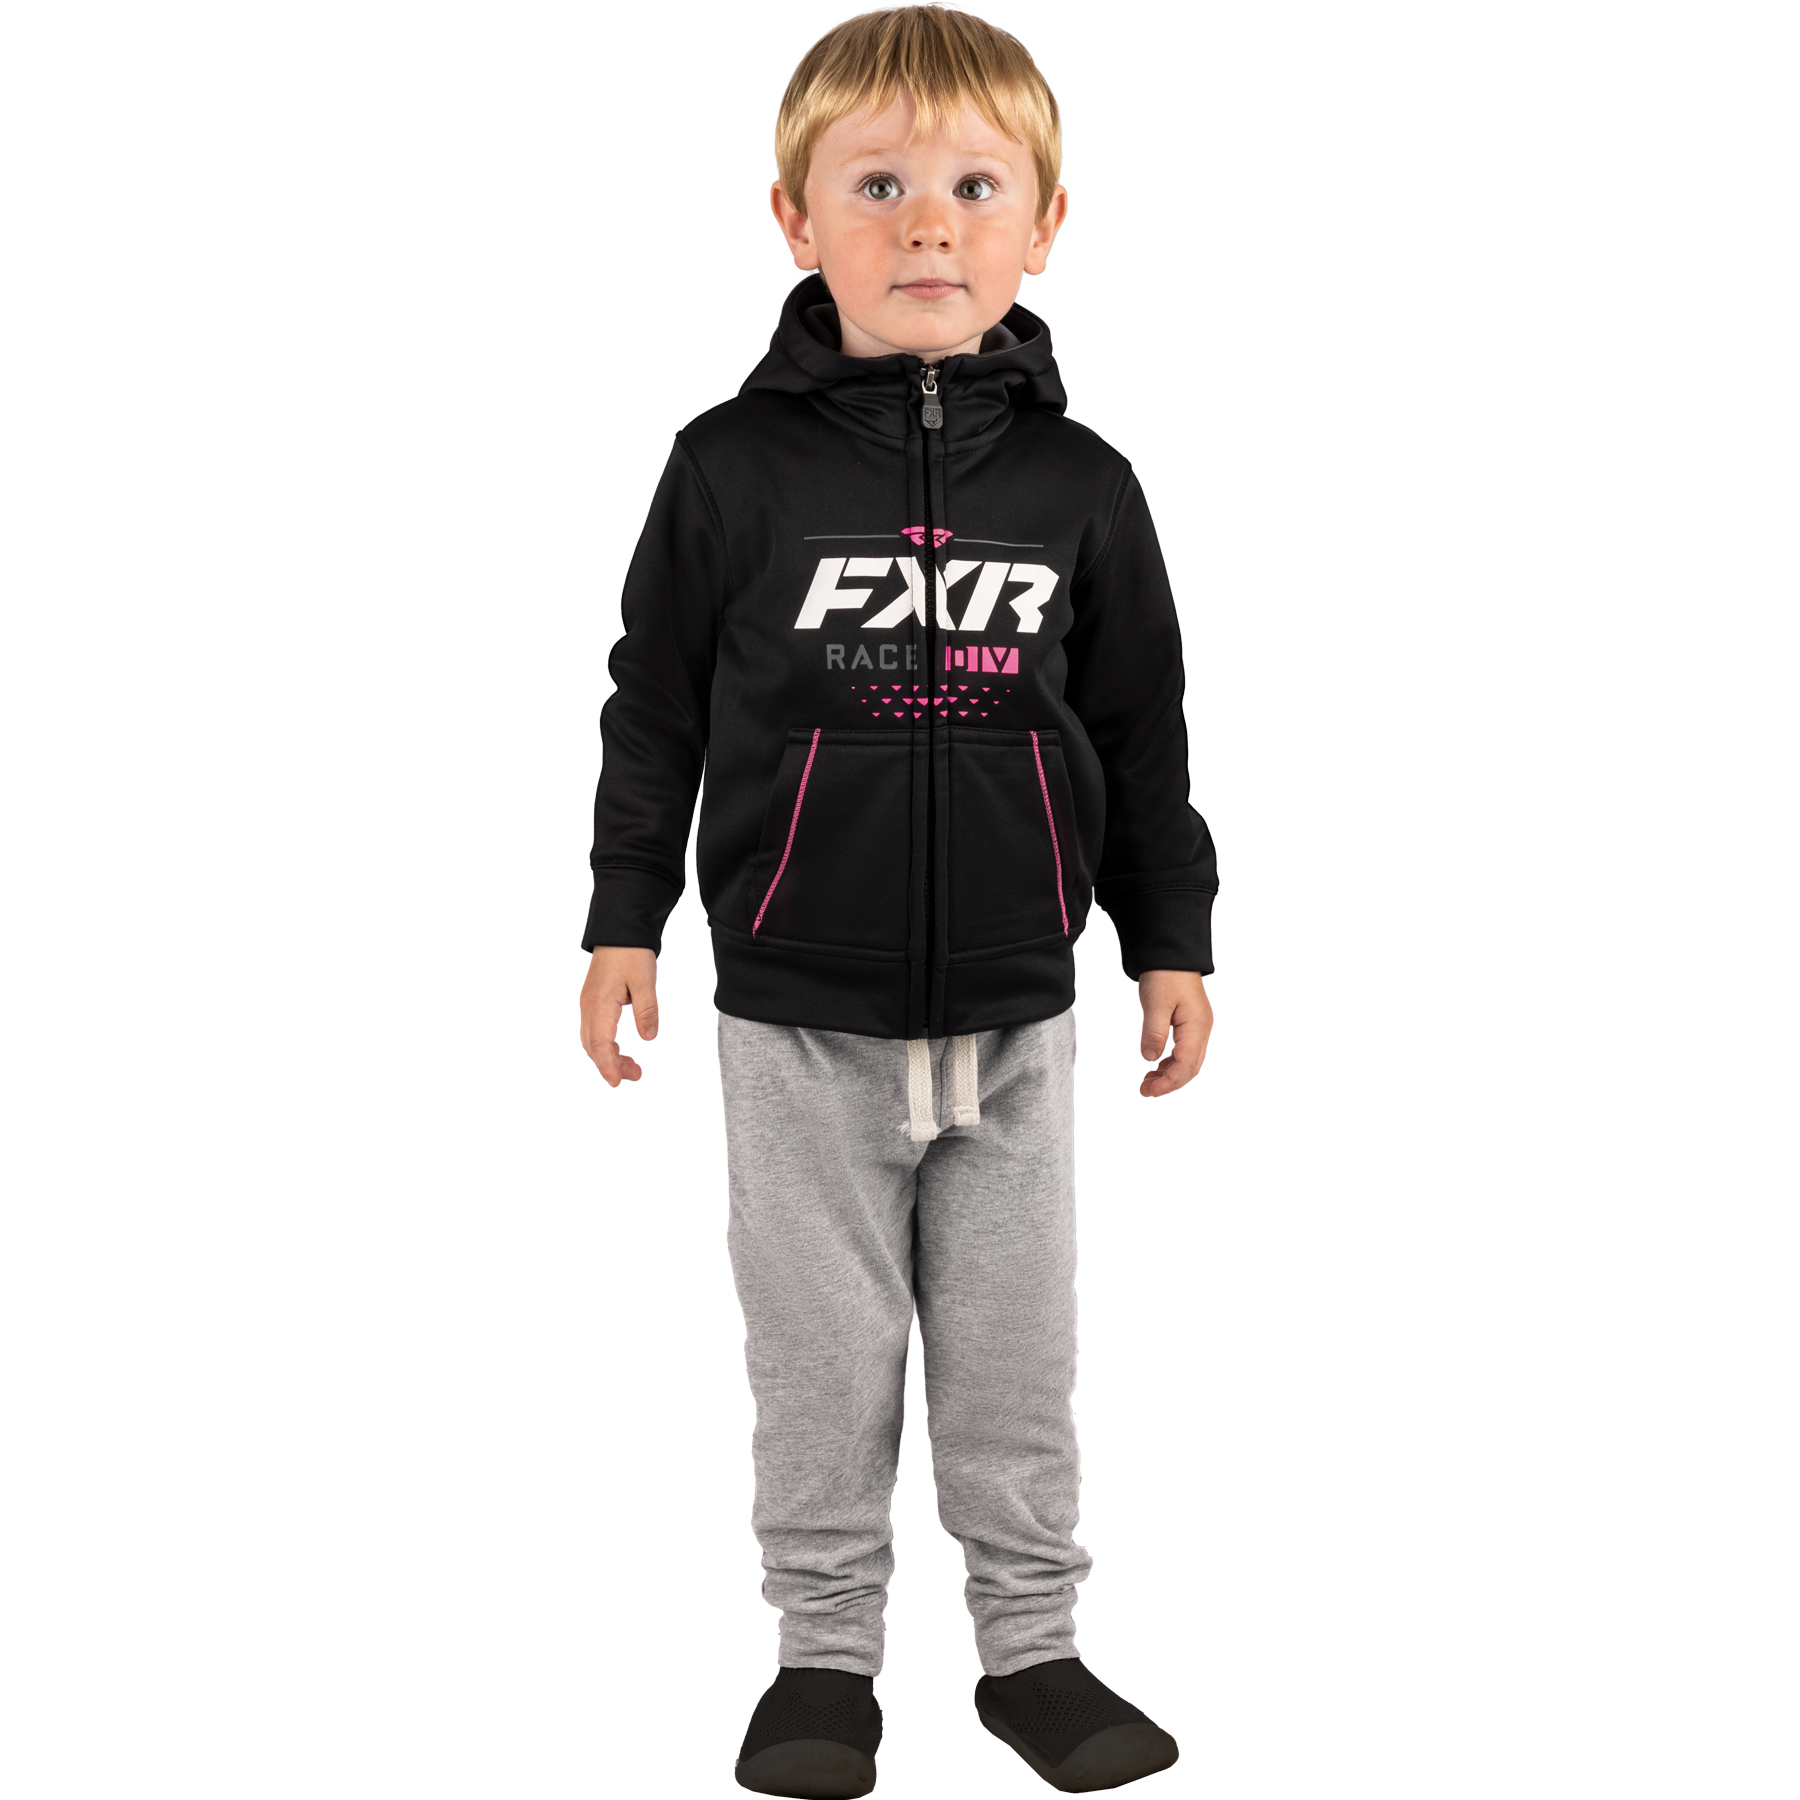 Toddler Race Division Hoodie 22